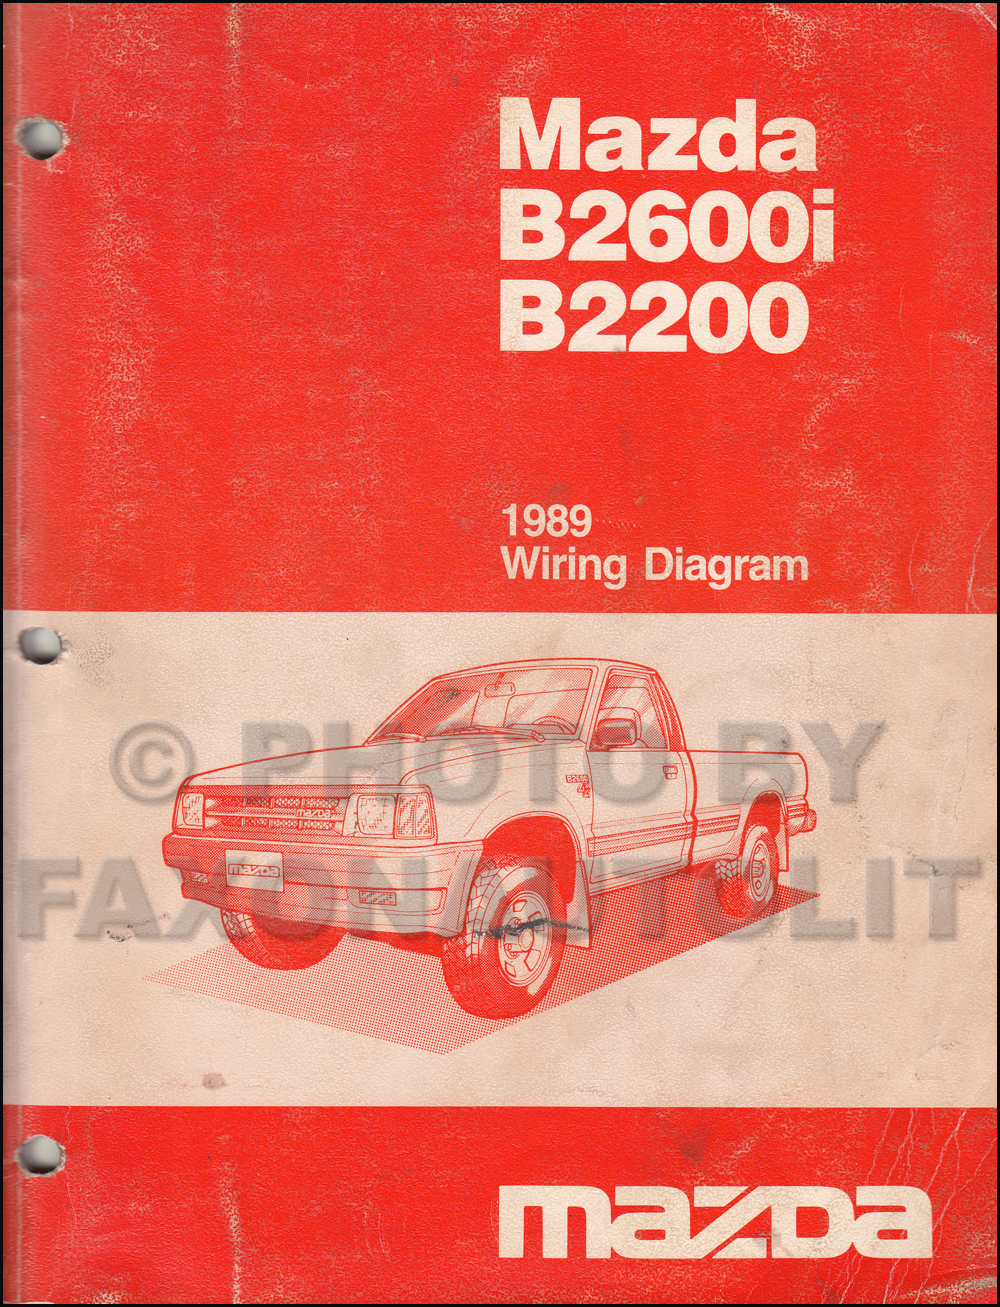 1993 mazda b2600 wiring diagram visual studio uml class best library 1989 b2600i b2200 pickup truck manual original